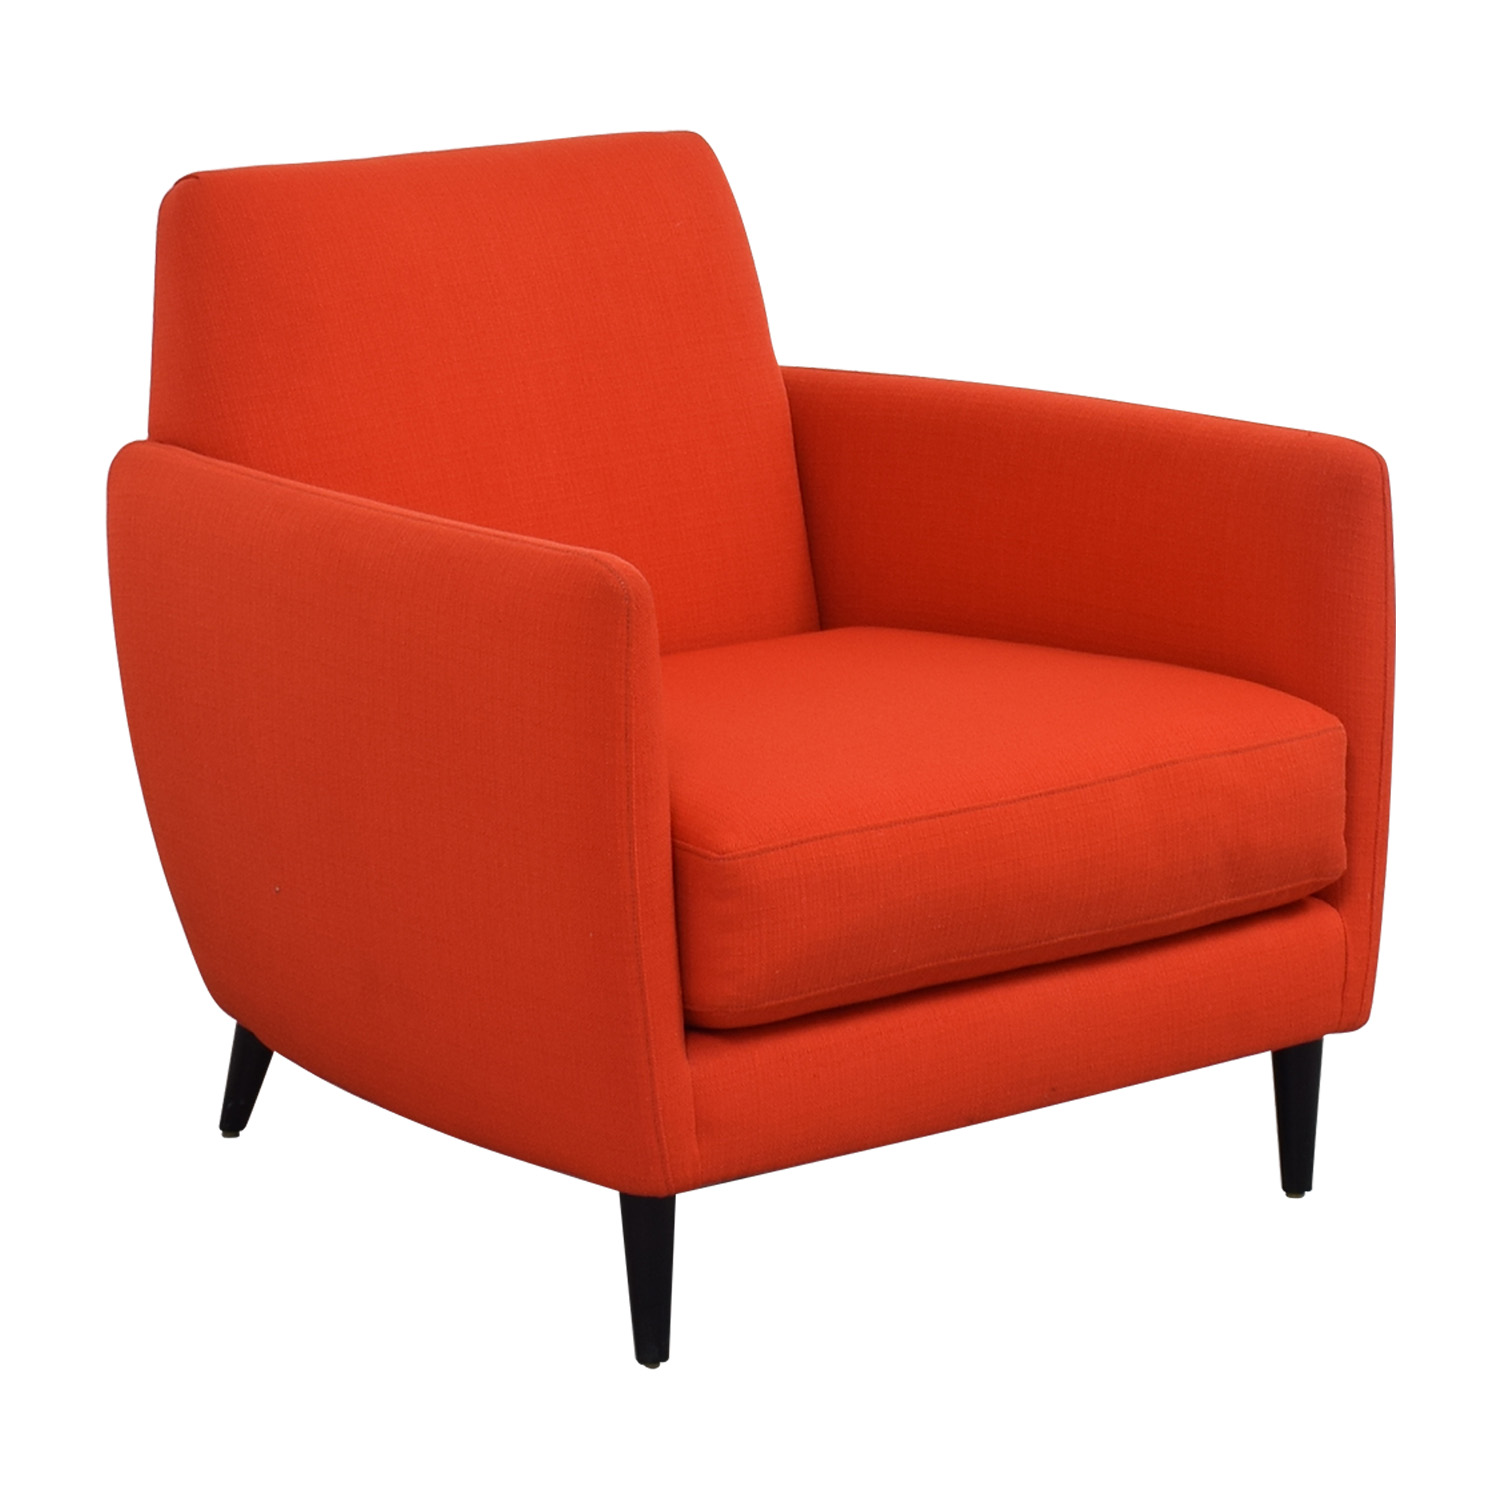 CB2 CB2 Orange Red Parlour Chair on sale